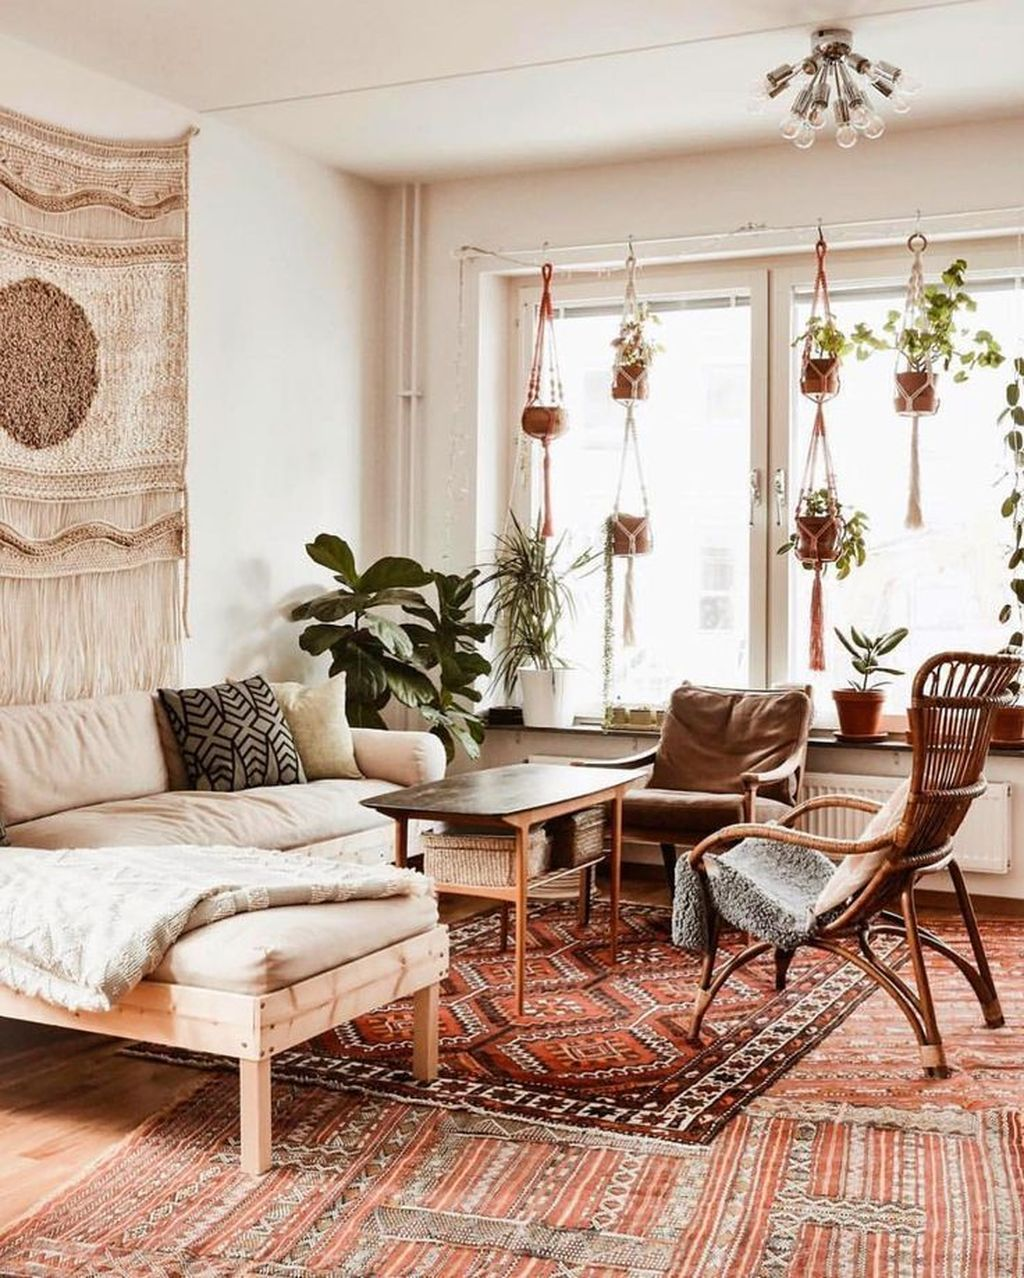 Nice 43 Elegant Bohemian Style Living Room Decoration Ideas. More at https://homystyle.c…   Bohemian style living room, Bohemian living room decor, Boho living room